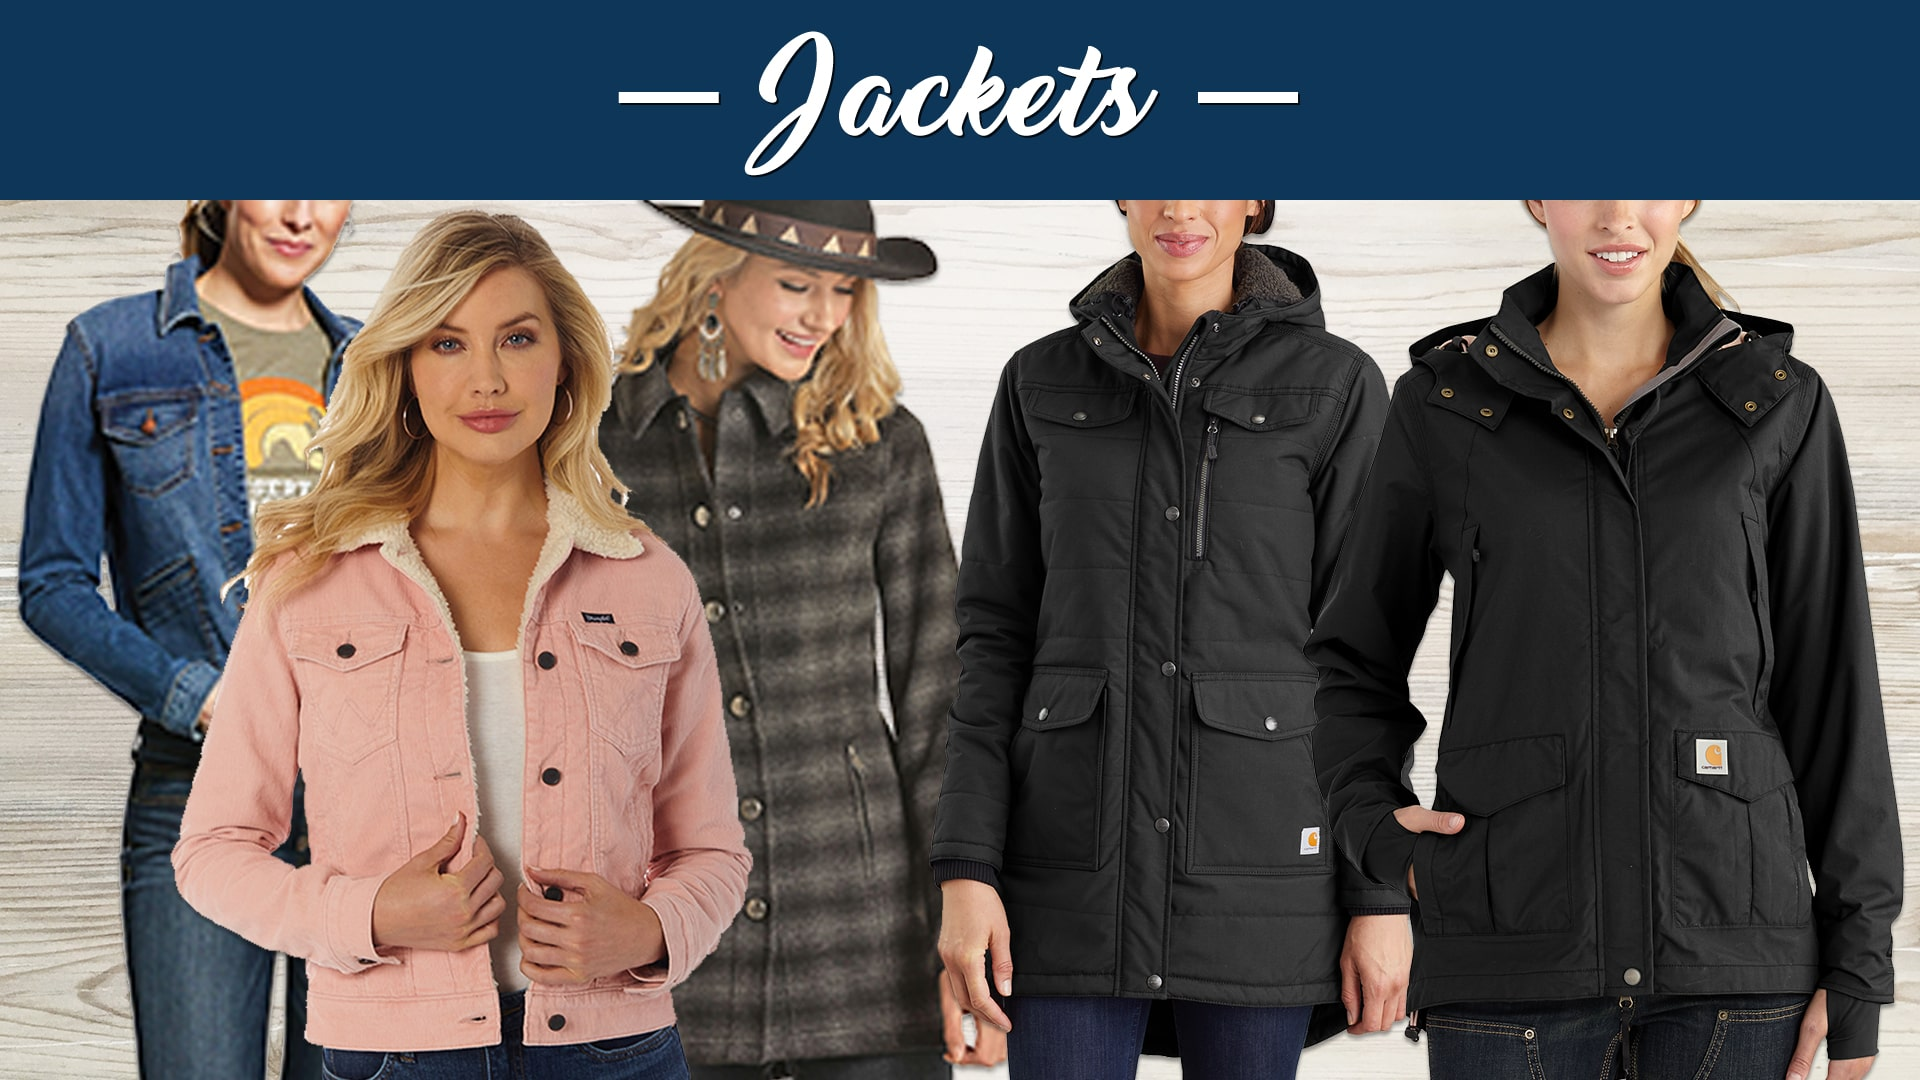 New Ladies Fall Styles Jackets